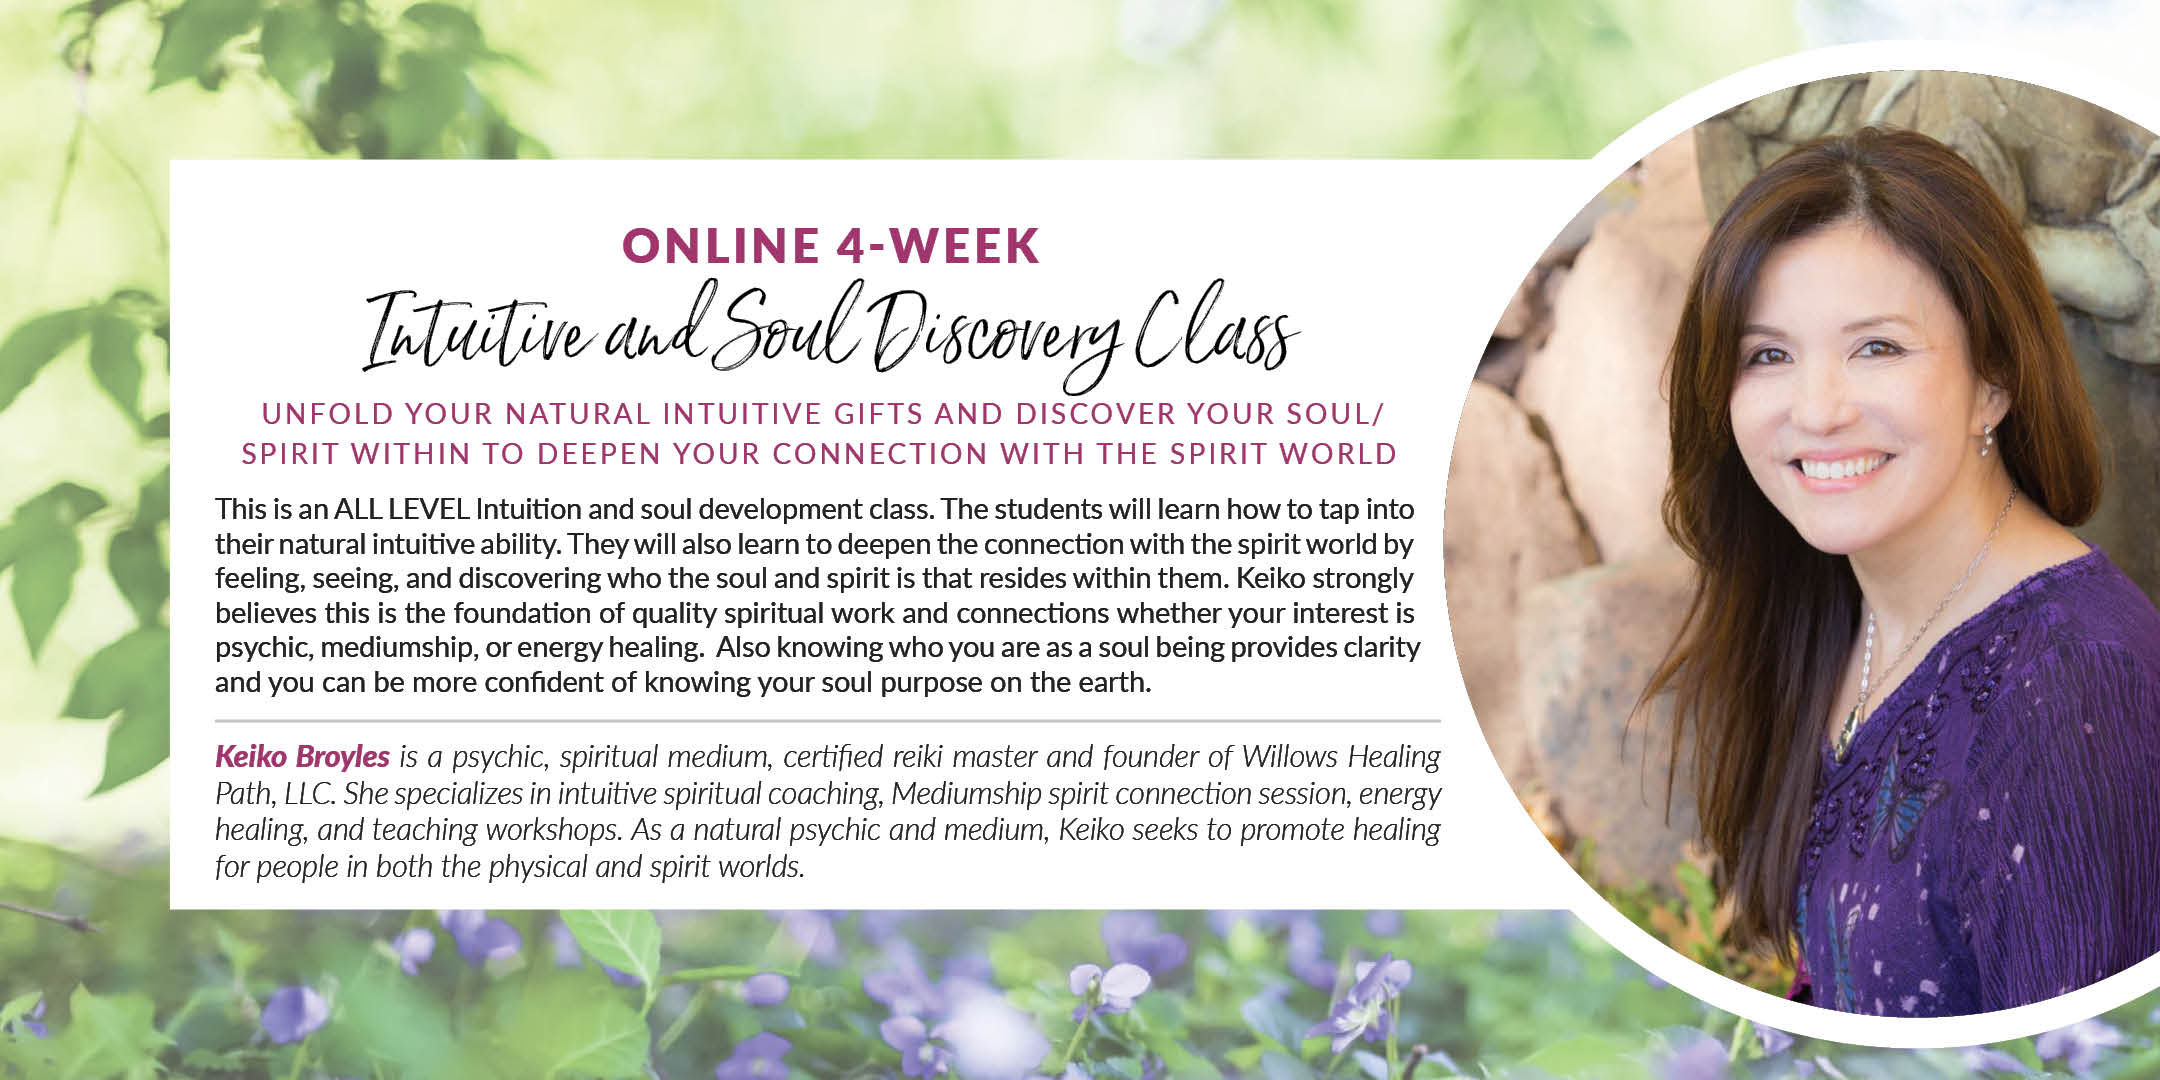 Online 4-week Intuitive and Soul Discovery Class